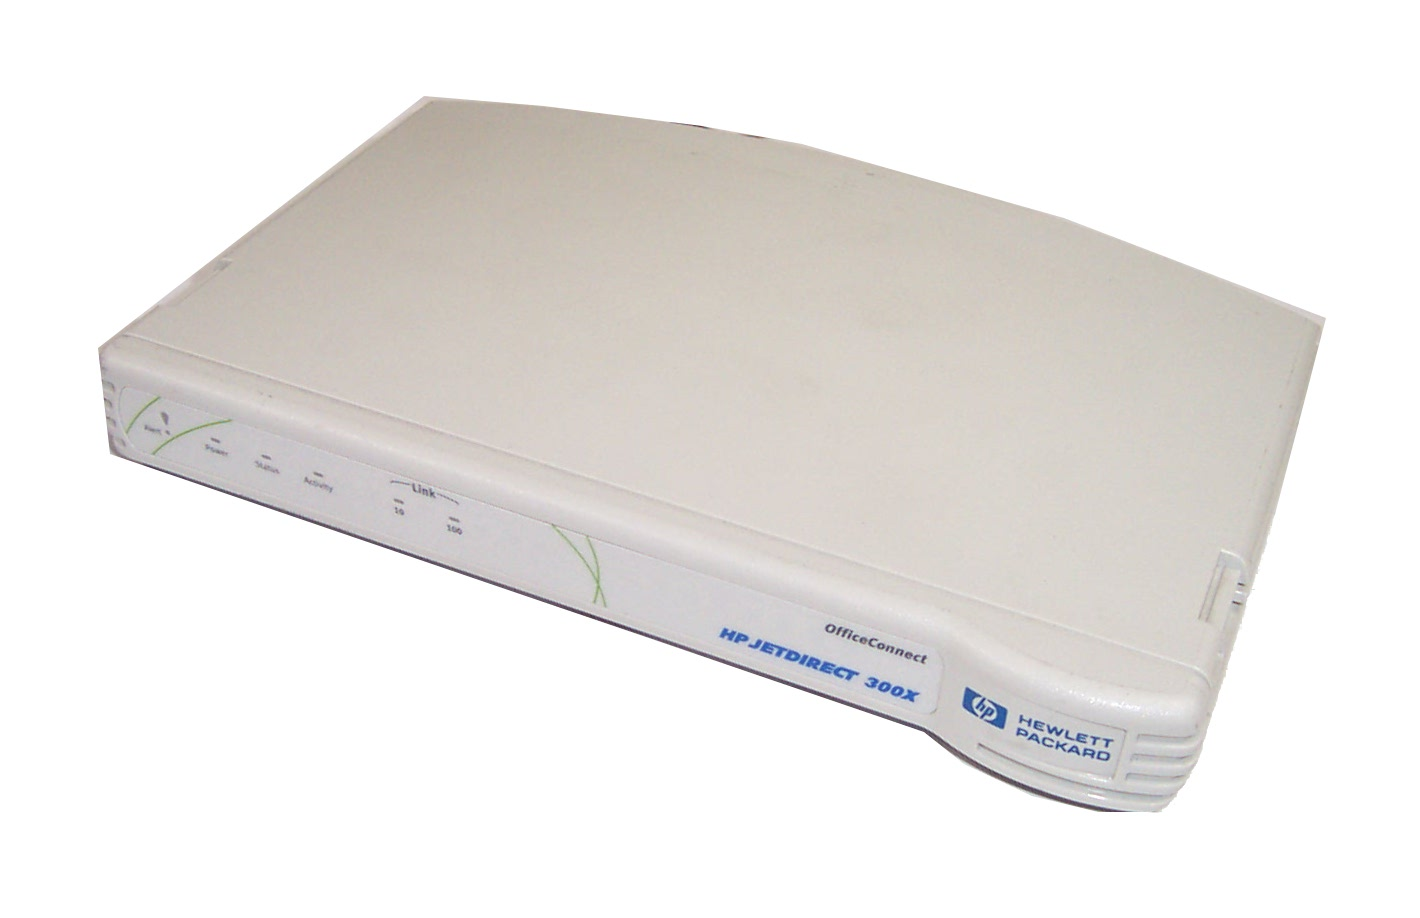 HP J4101B JetDirect 300X OfficeConnect Print Server Enlarged Preview